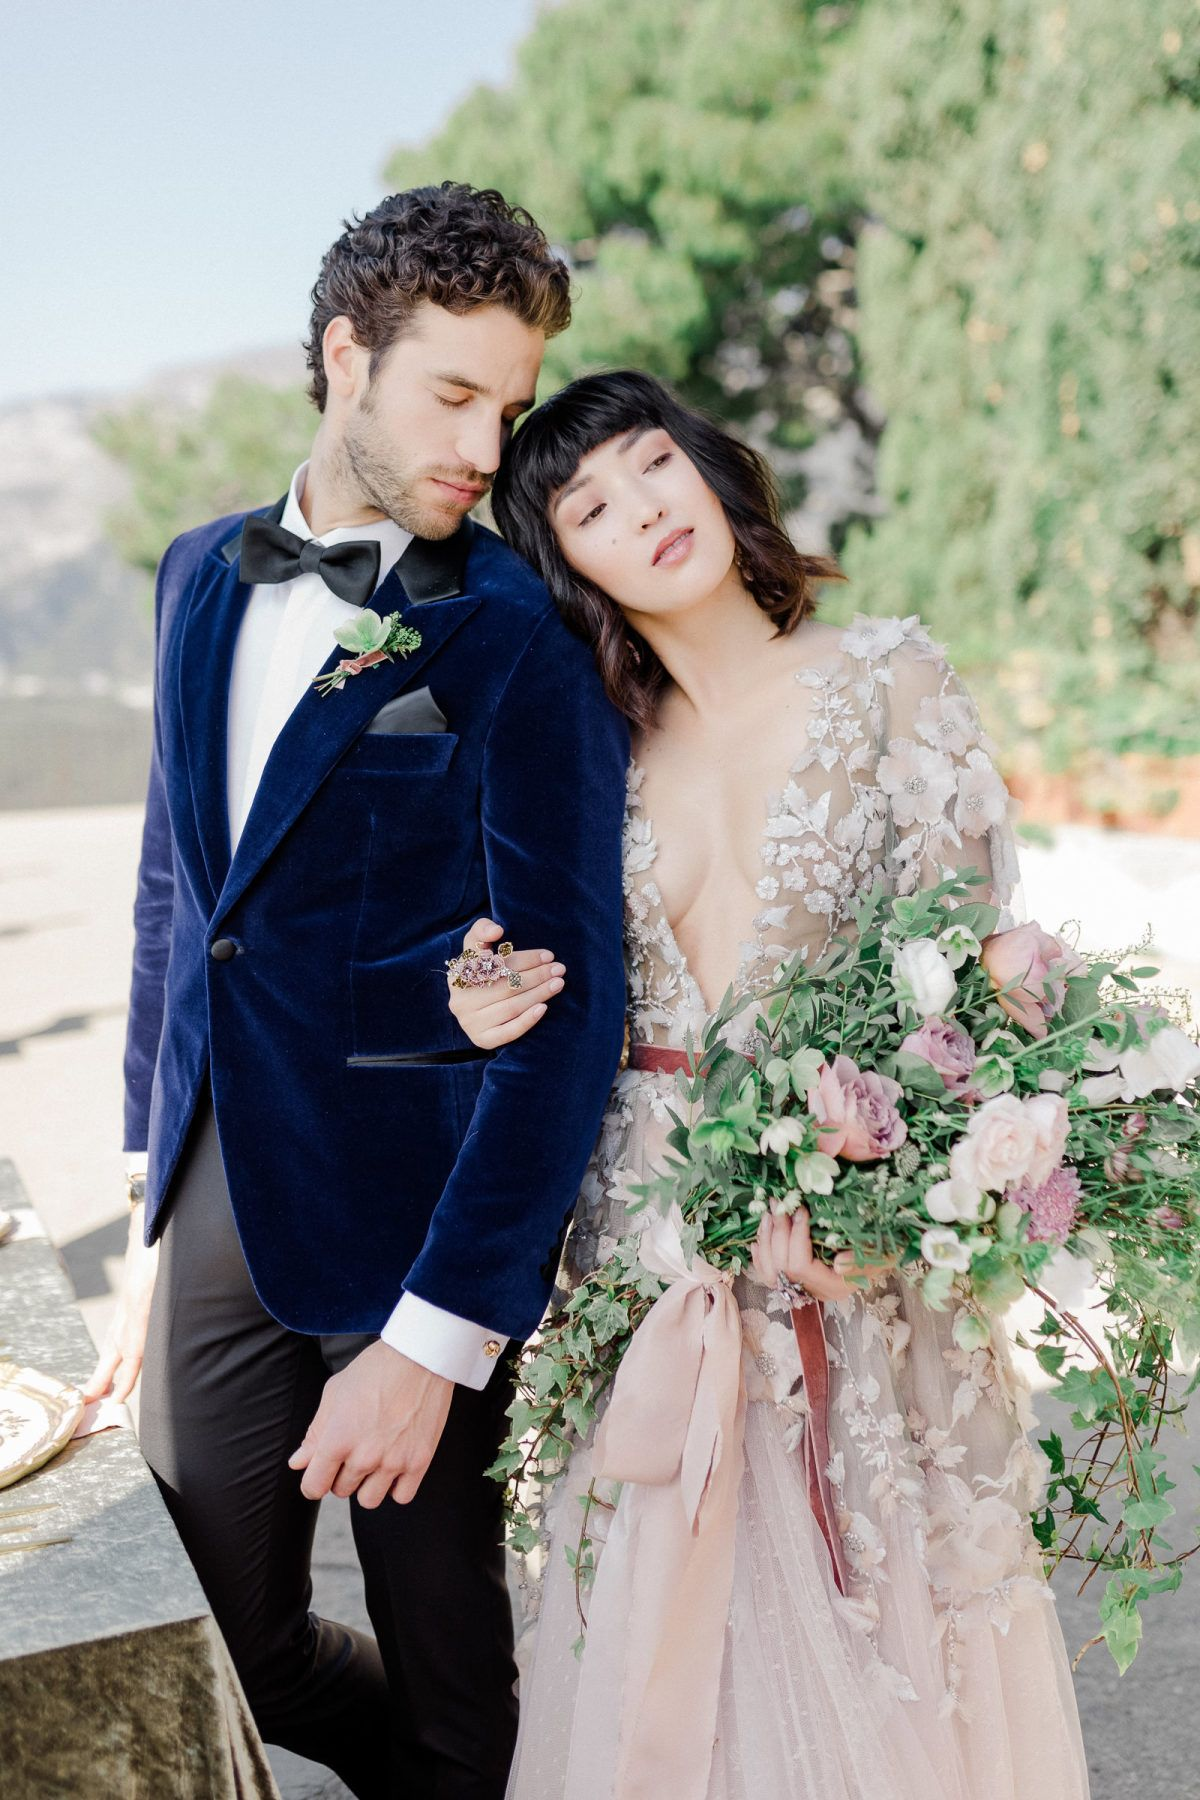 An Intimate Three Day Wedding In Tuscany Italy Wedding Dress Tuscany Wedding Wedding Guest Dress [ 1279 x 854 Pixel ]